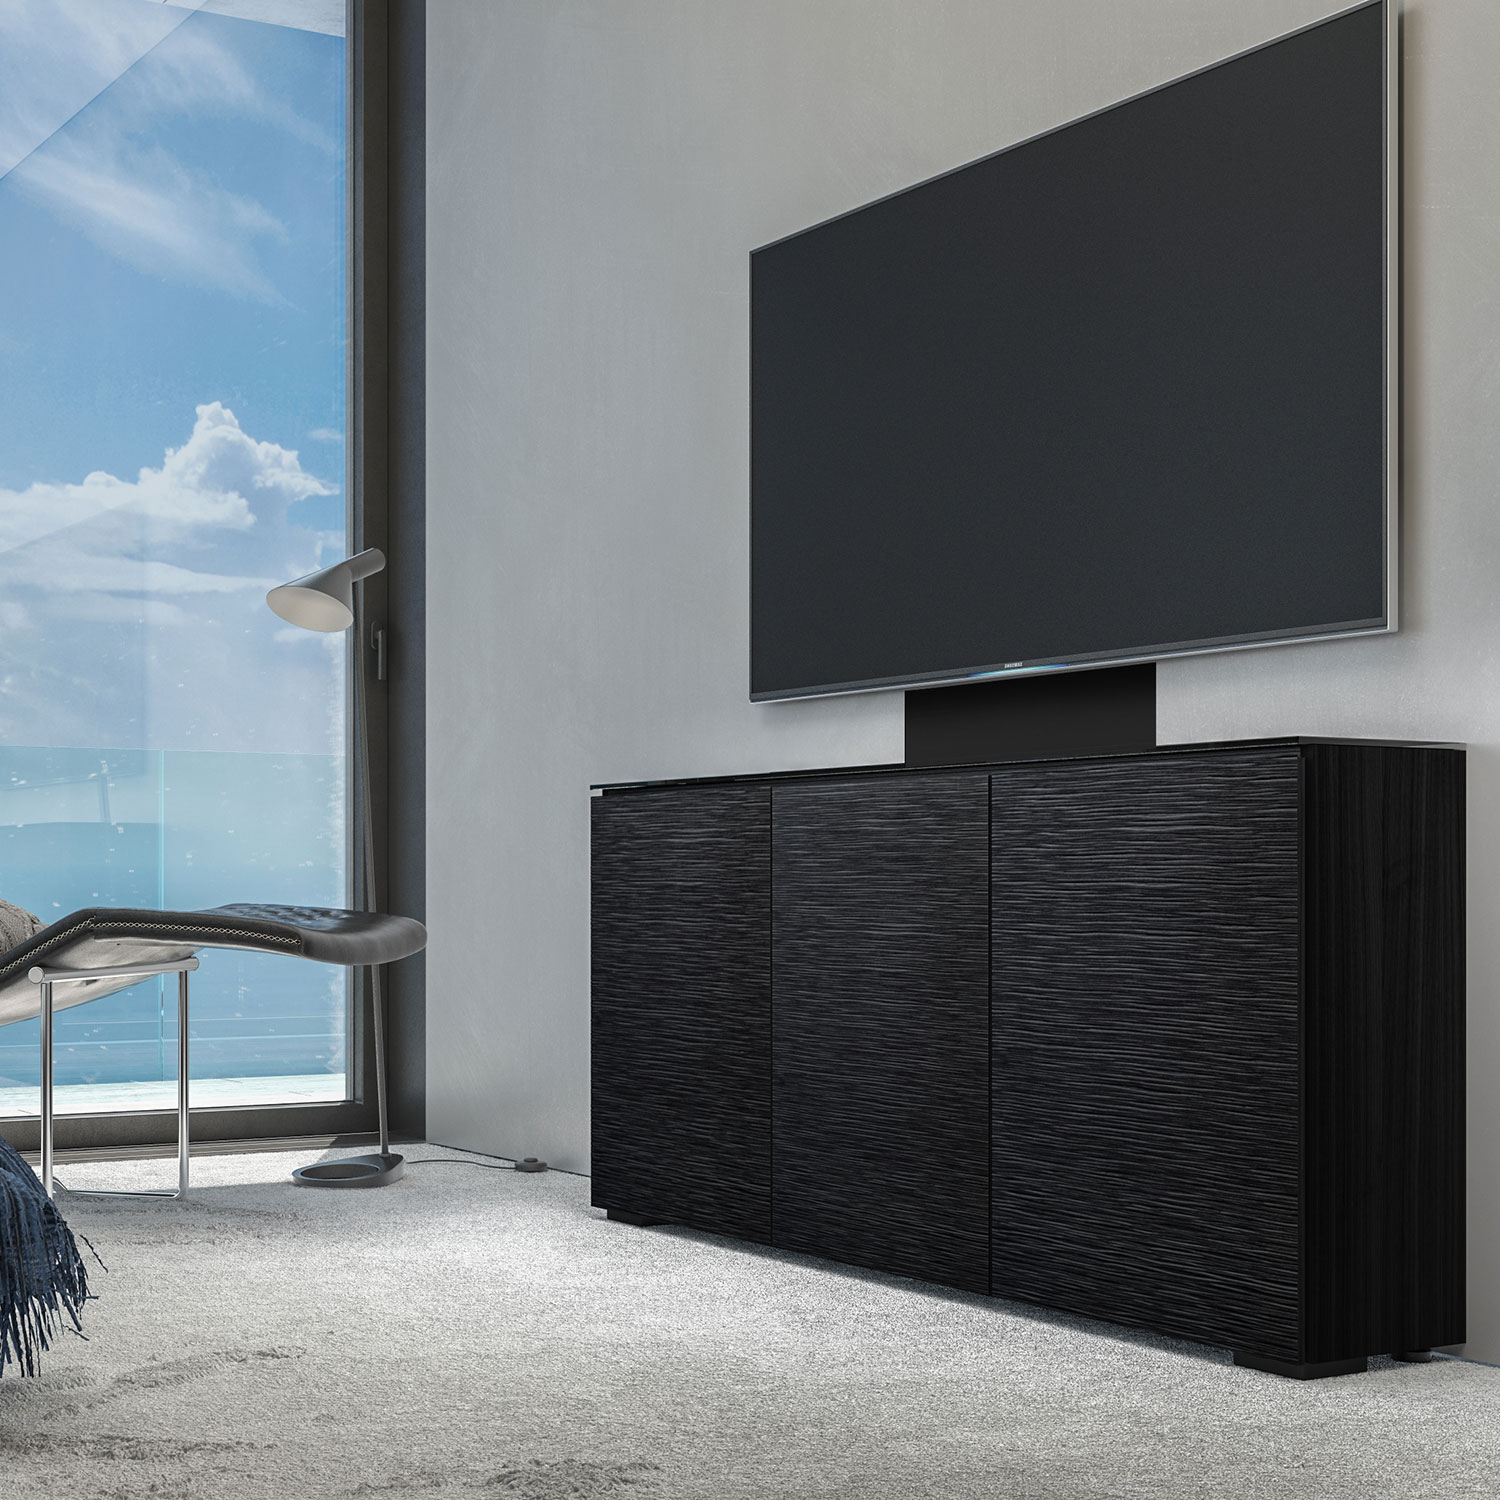 mounted wall cabinets chameleon berlin collection zoom wenge textured designs width quad av cabinet salamander